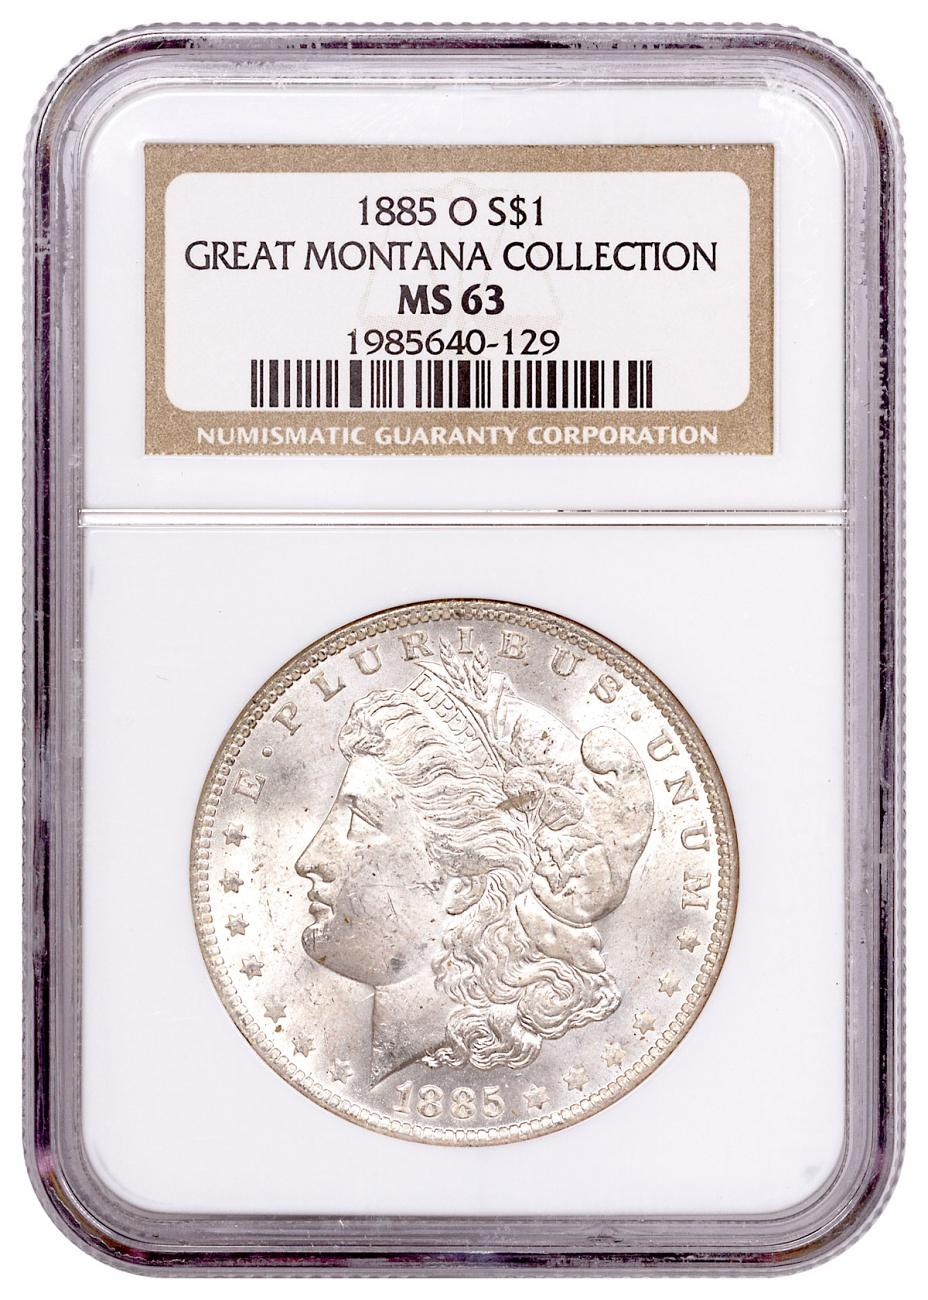 1885-O Silver Morgan Dollar From the Great Montana Collection NGC MS63 Toned CPCR 0129